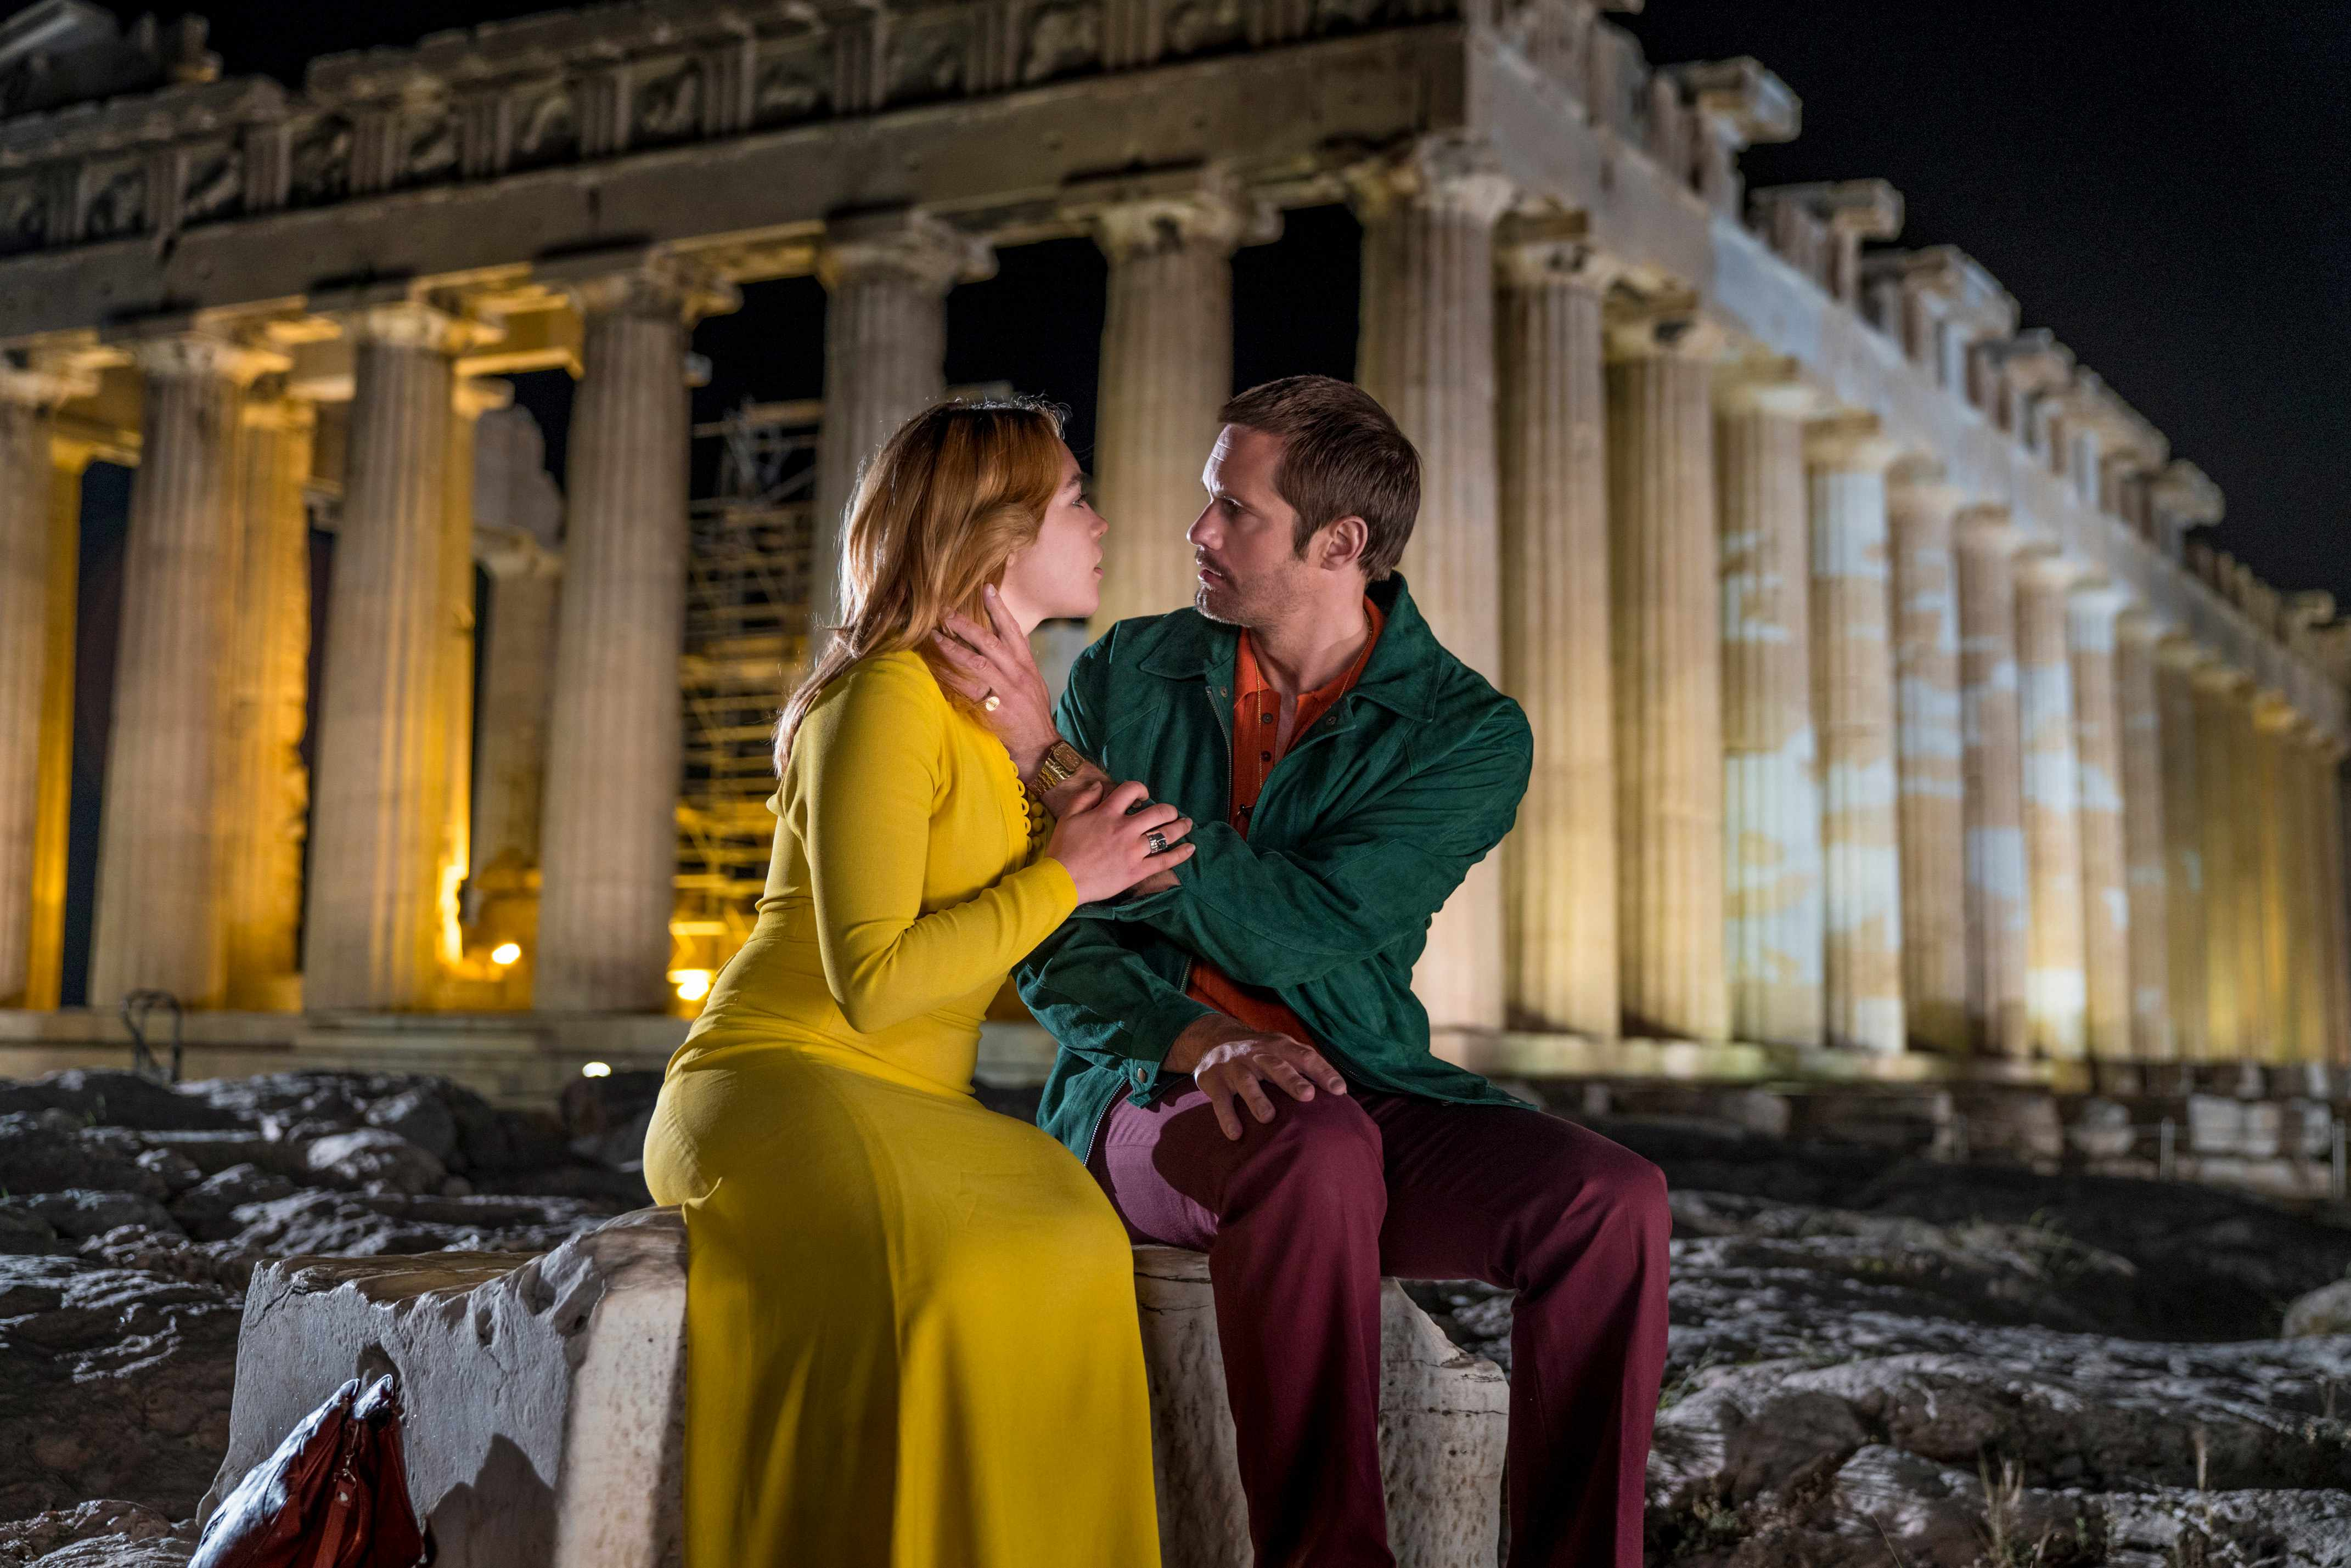 Programme Name: The Little Drummer Girl - TX: n/a - Episode: Early Release (No. n/a) - Picture Shows: *EMBARGOED FOR PUBLICATION UNTIL 23:15:01 ON SATURDAY 28TH JULY 2018* (L-R) Charlie (FLORENCE PUGH), Becker (ALEXANDER SKARSGARD) - (C) The Little Drummer Girl Distribution Limited.  - Photographer: Jonathan Olley